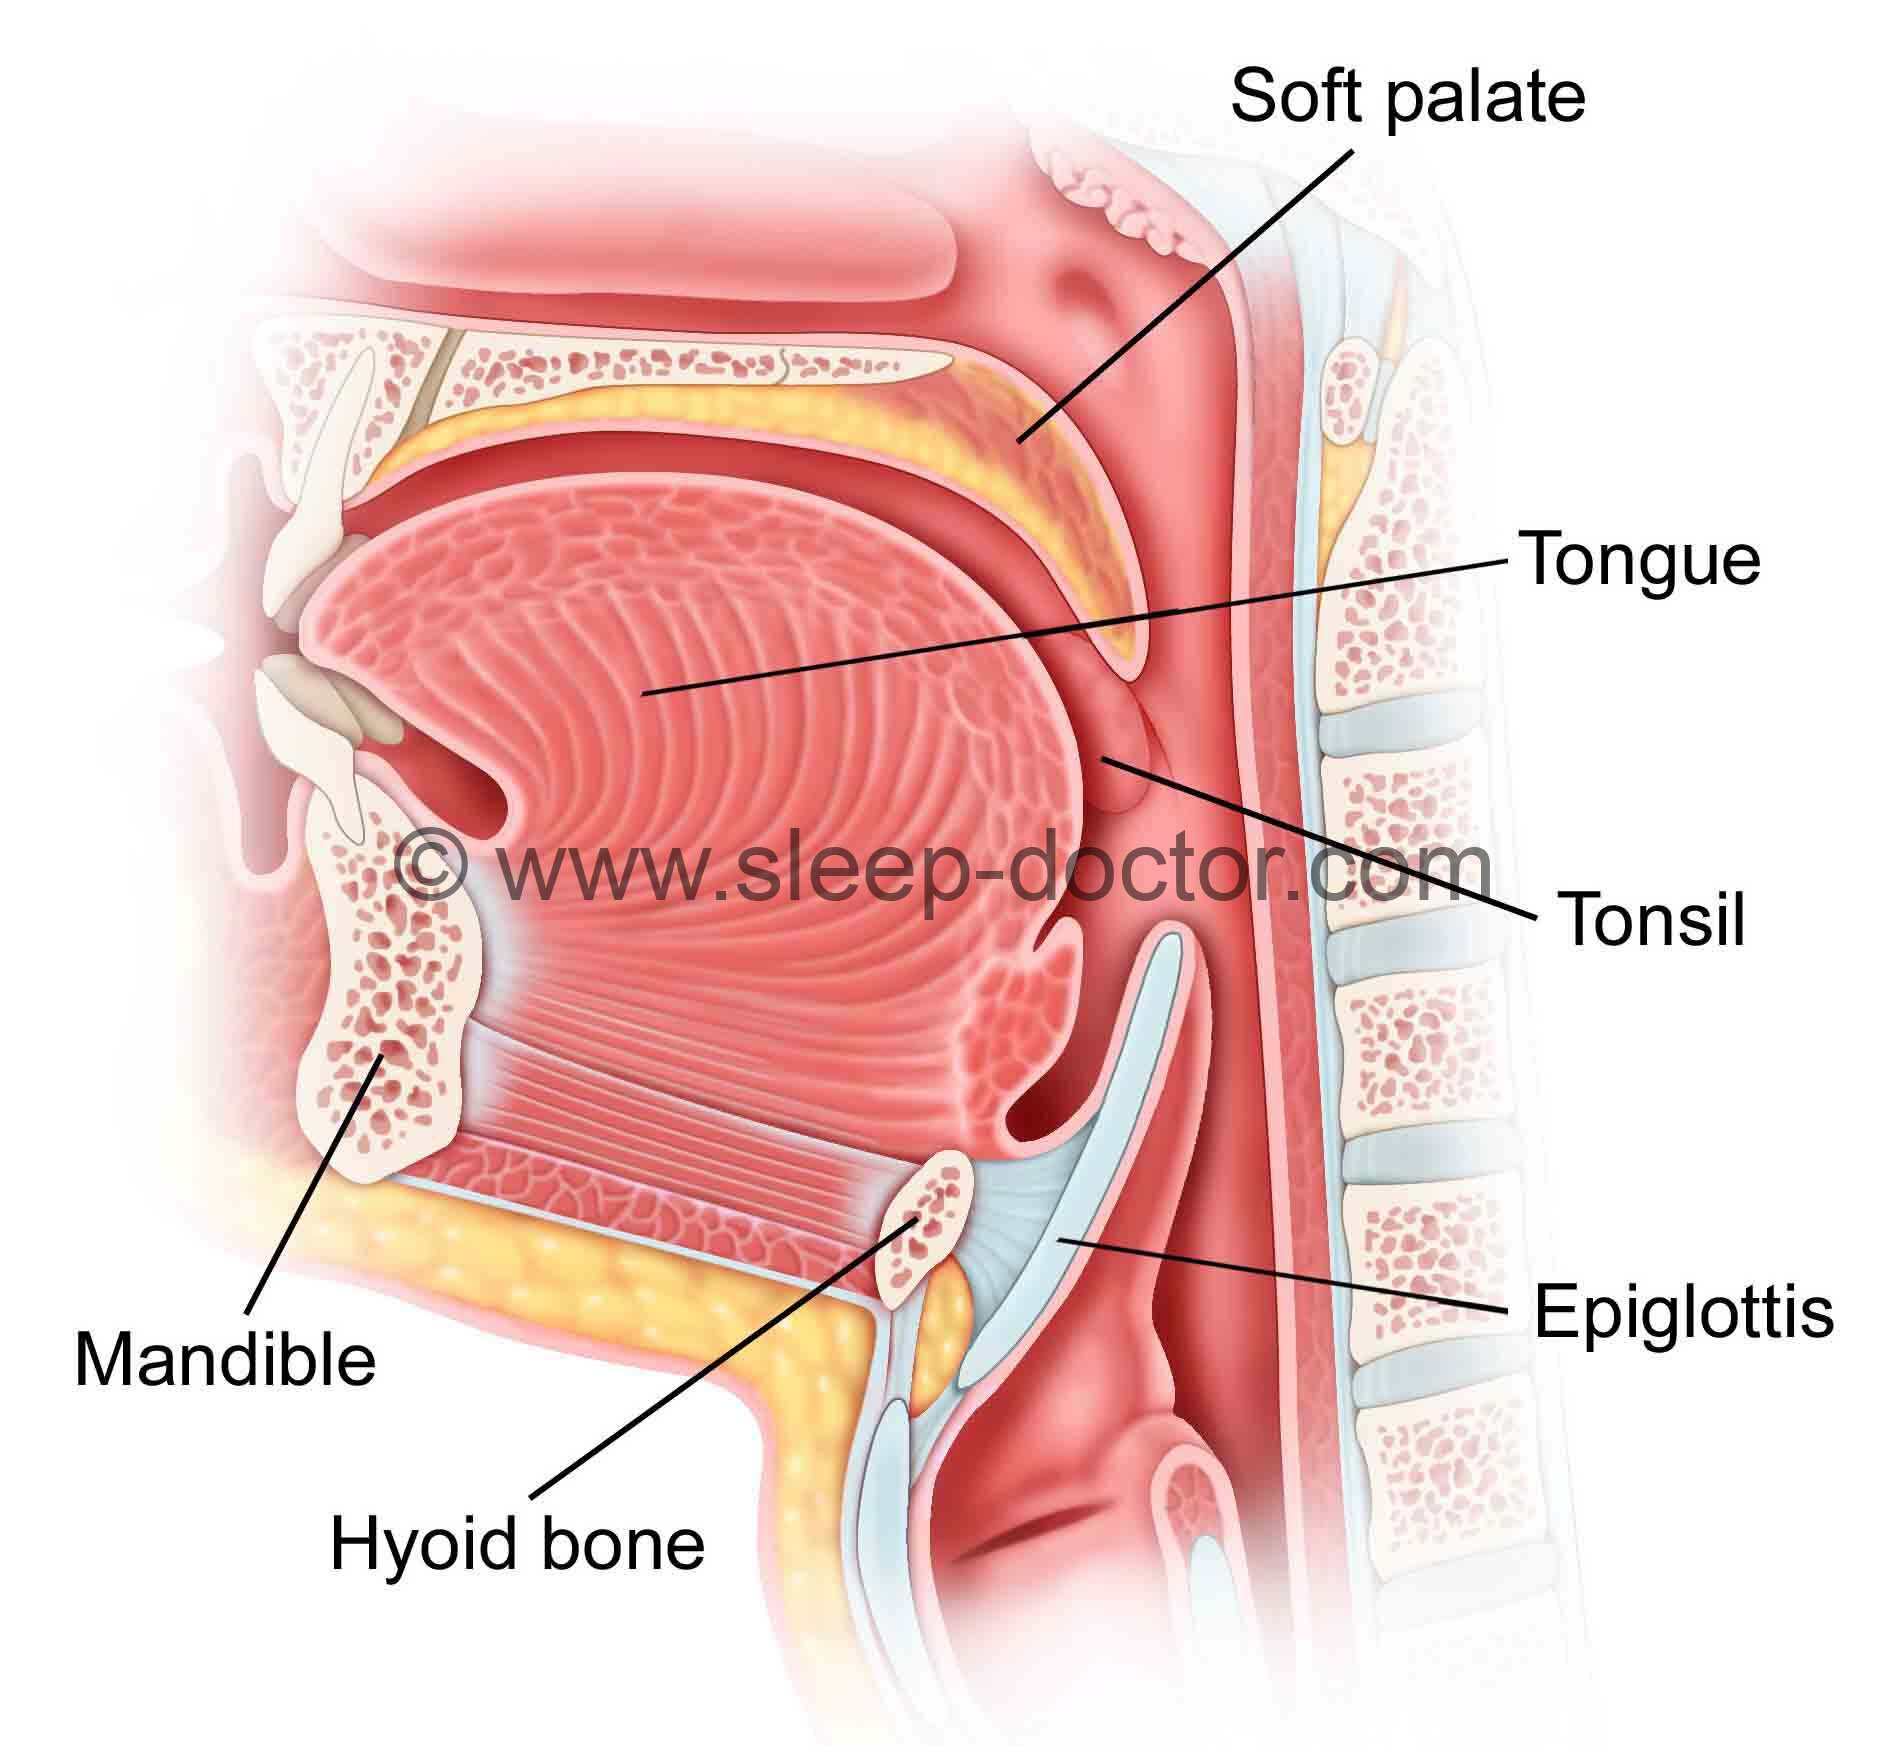 Epiglottis Surgery - Sleep Doctor